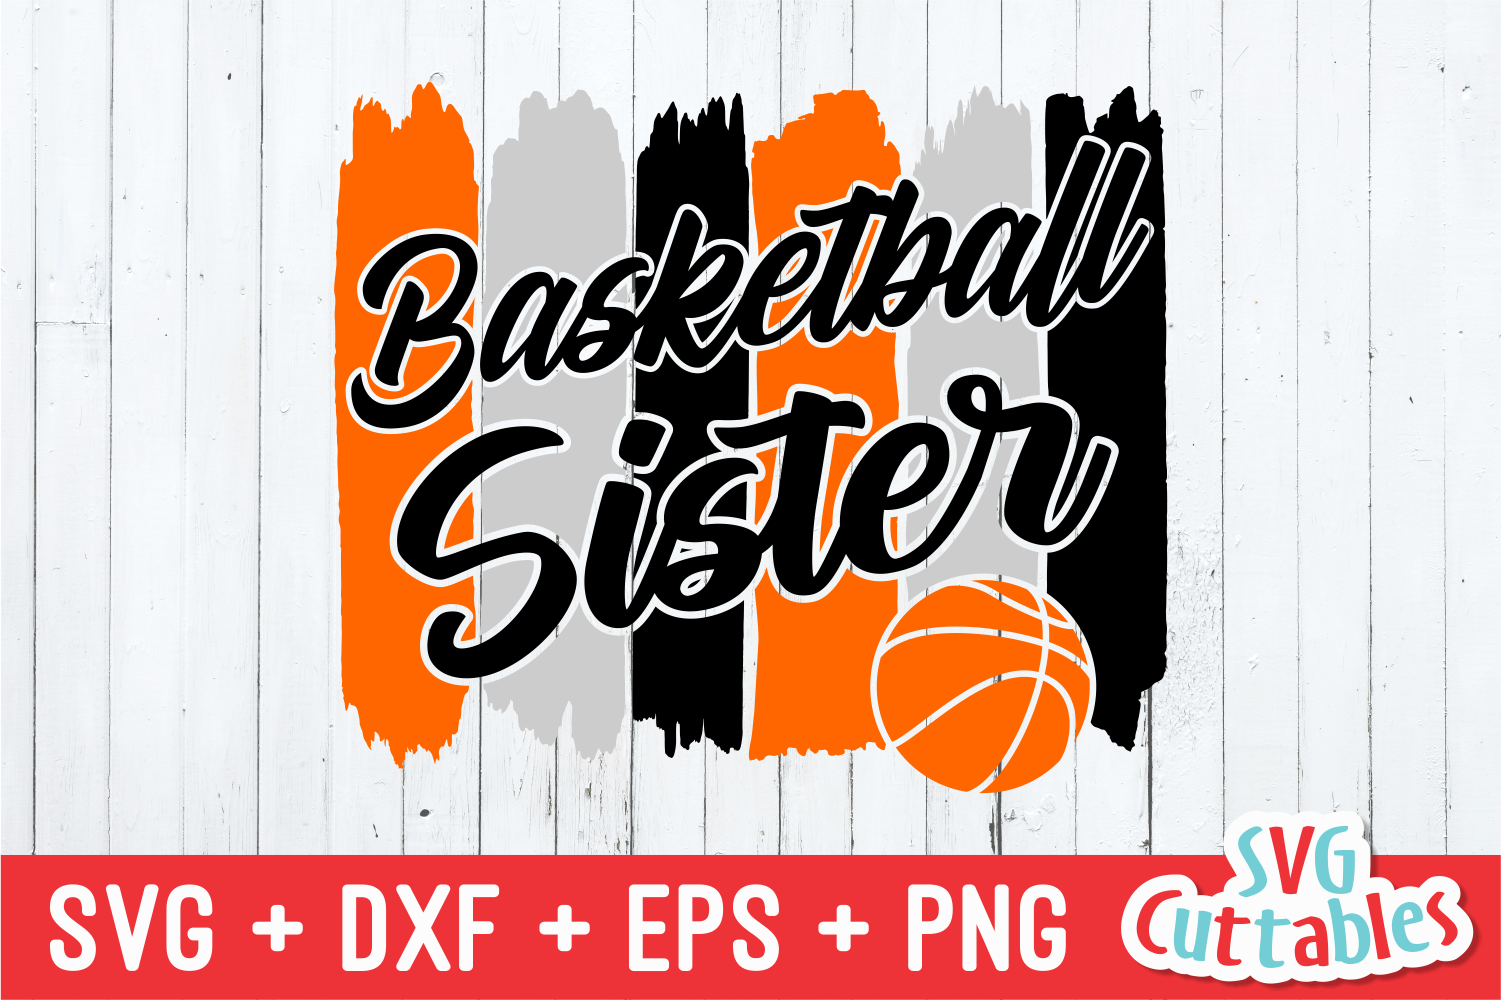 Basketball Sister | SVG Cut File example image 2